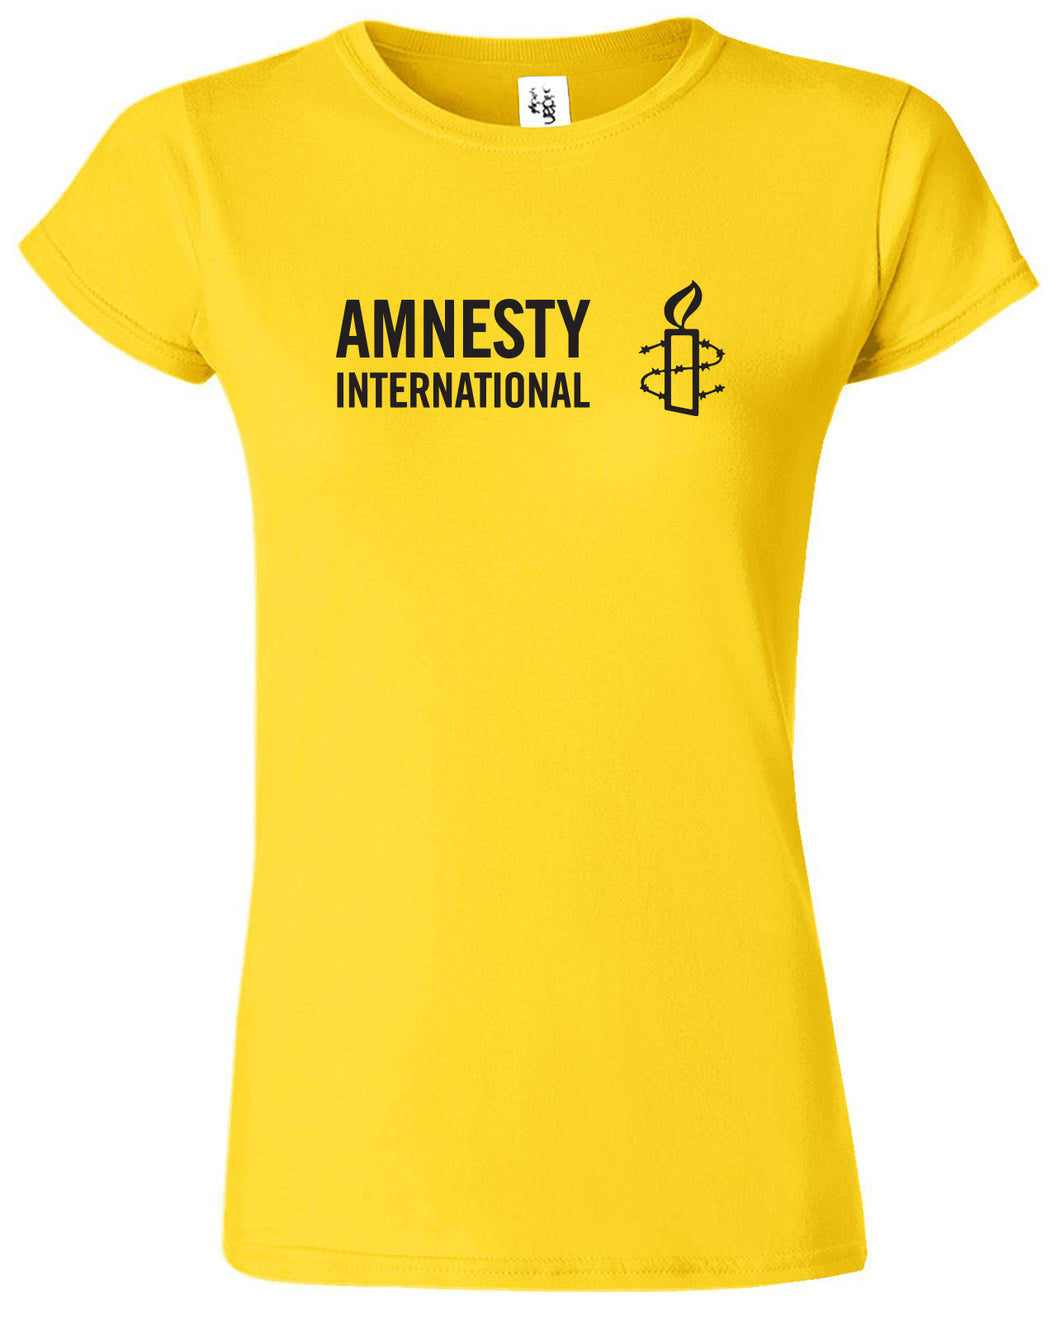 Women's T-shirt (Yellow) with Amnesty International USA Logo